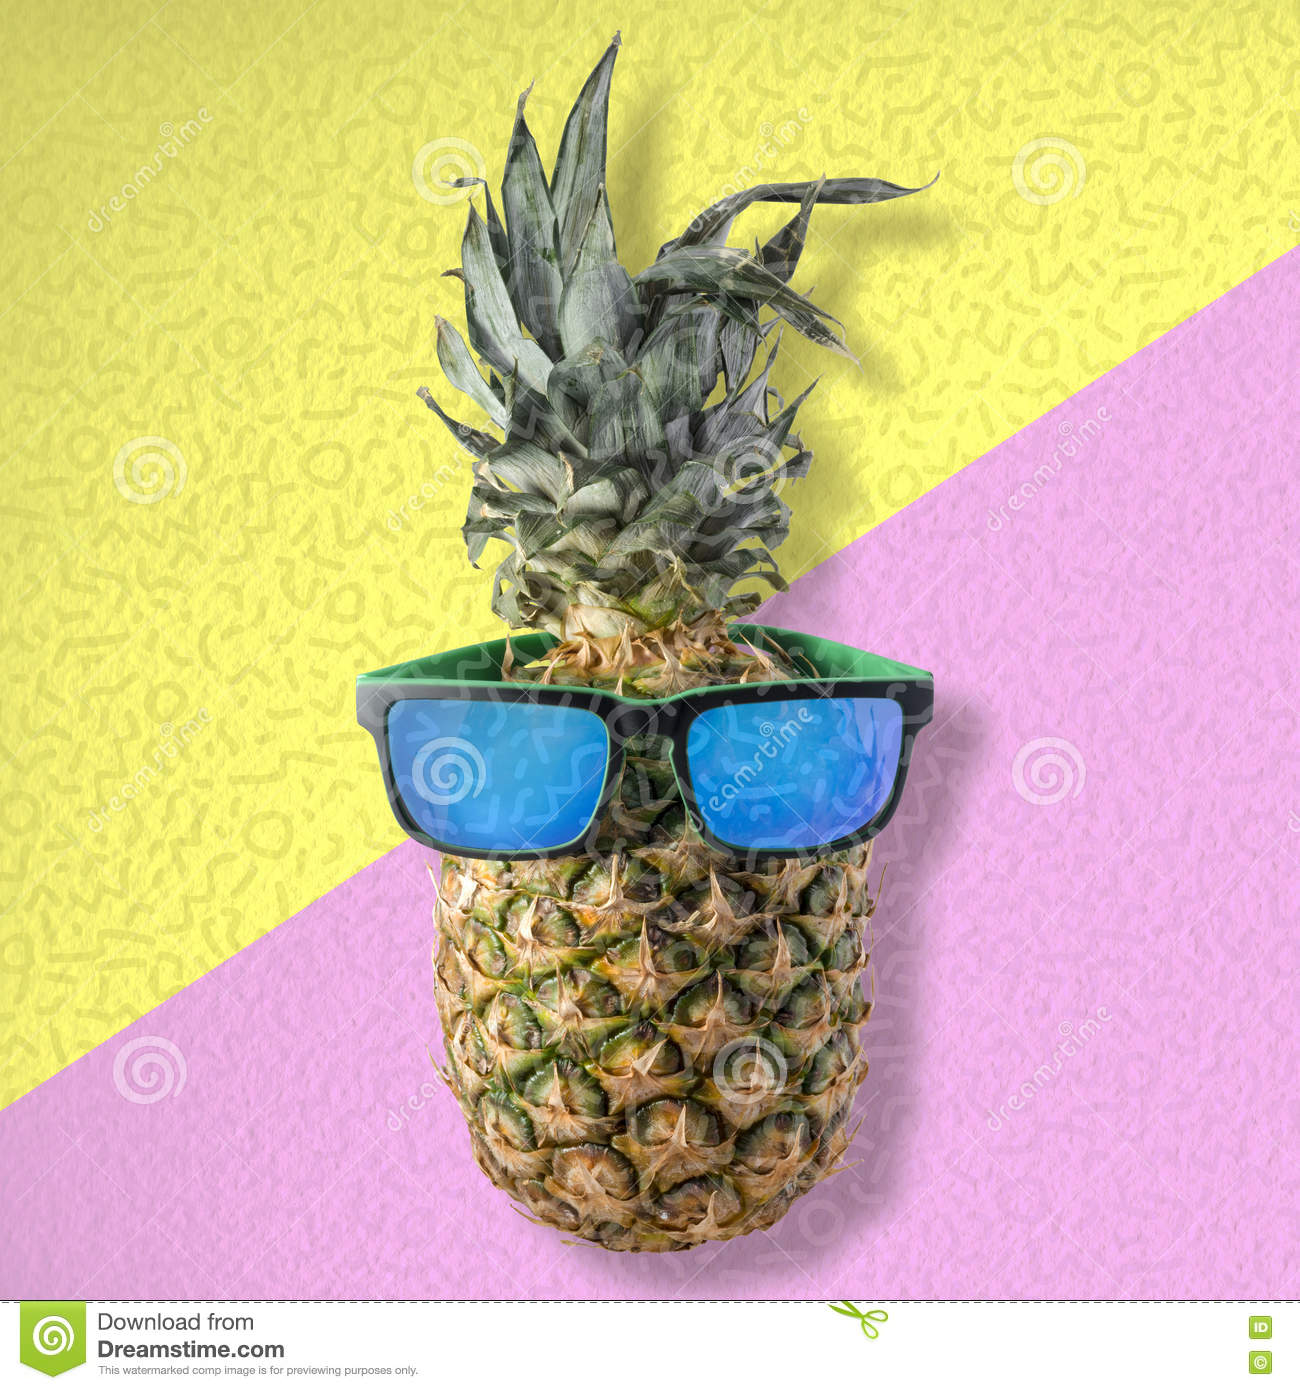 Pineapple With Sunglasses Tumblr Summer Backgrounds Sunglasses Pineapple Pictures To Pin On